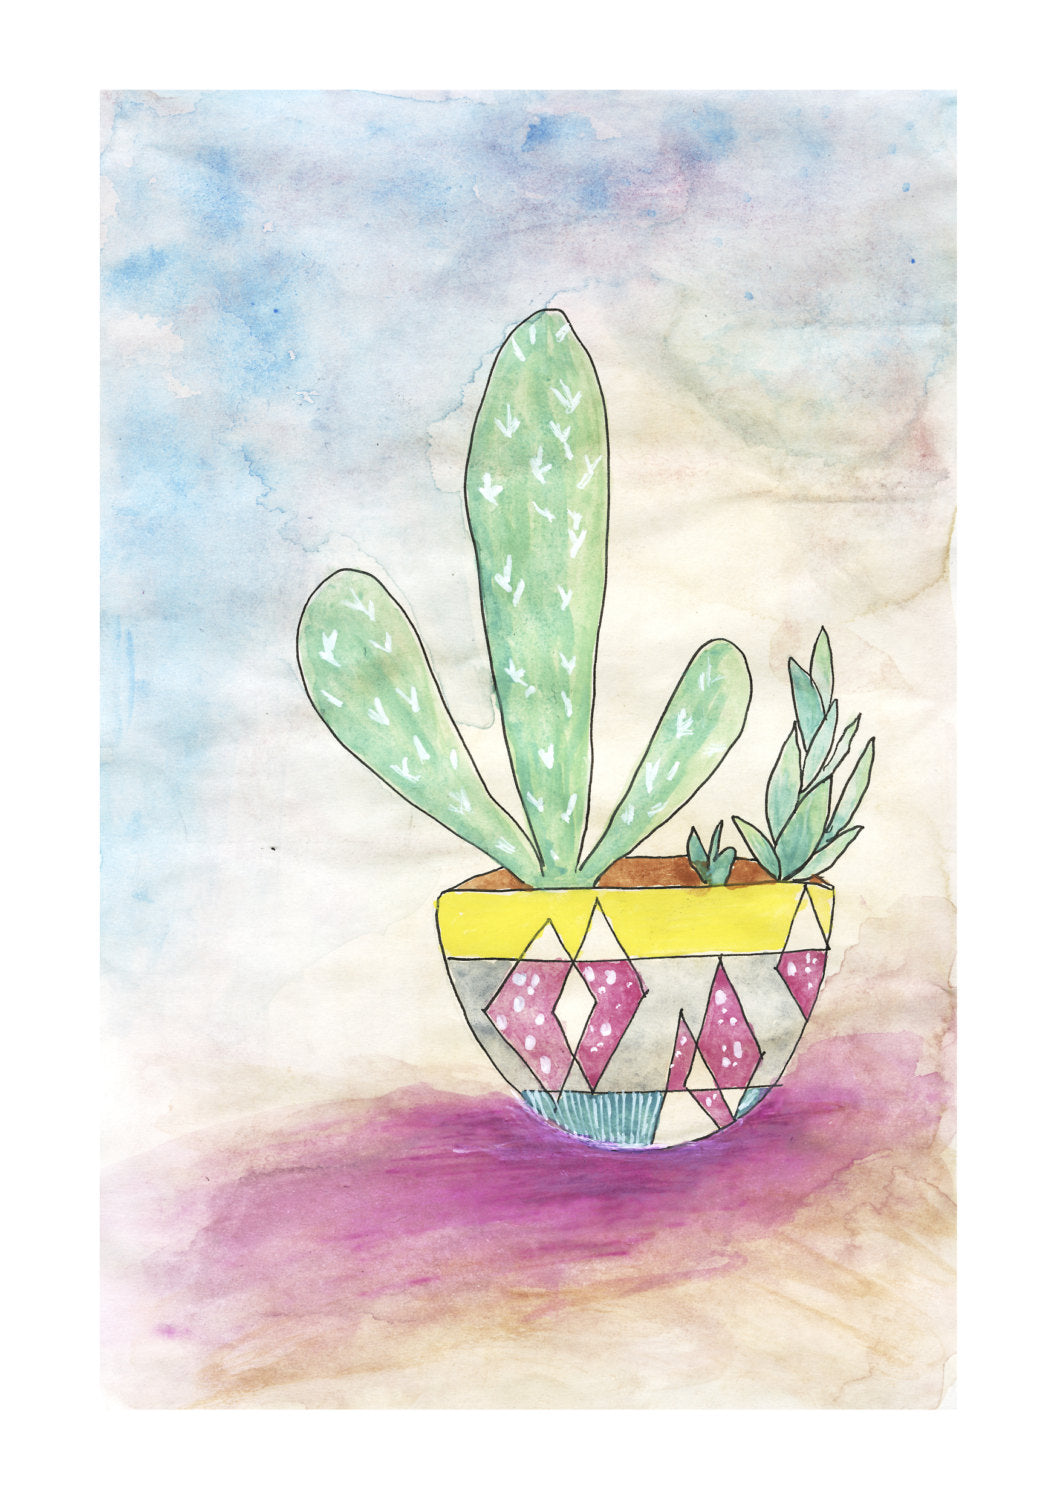 Cute Cactus No.1 wall art print by Minnie&Lou, made in Melbourne Australia